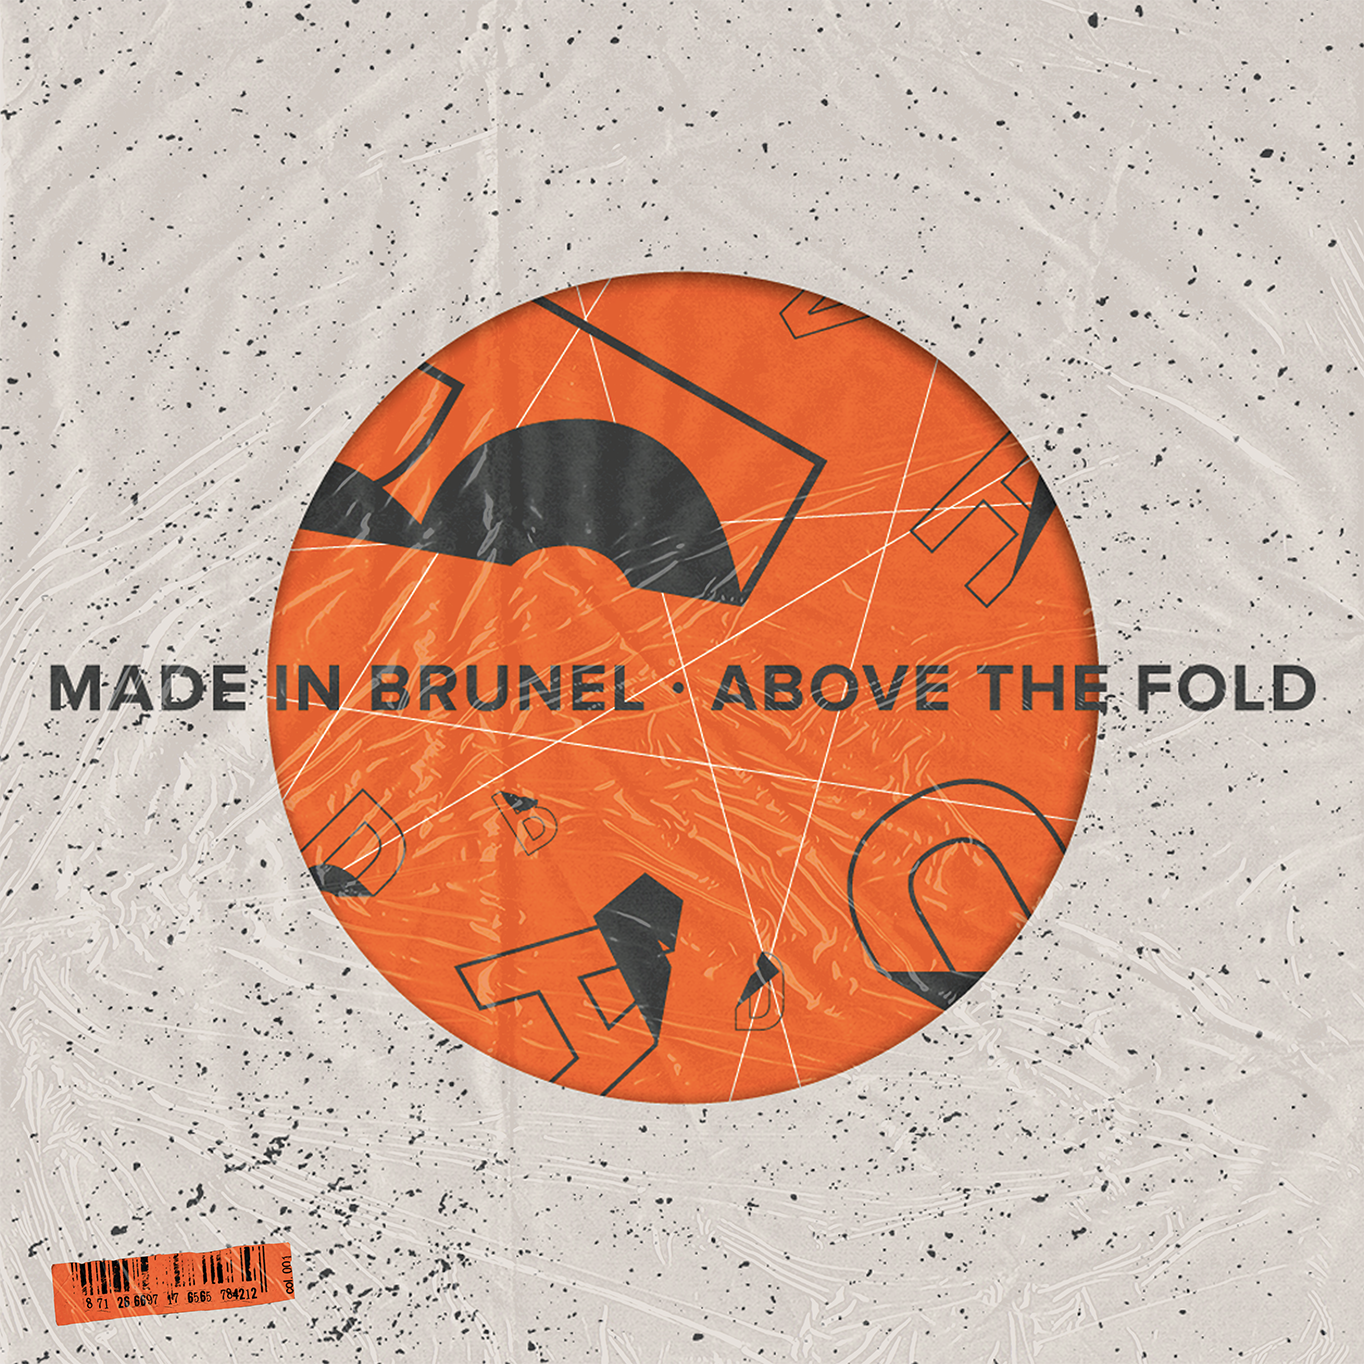 Made in Brunel